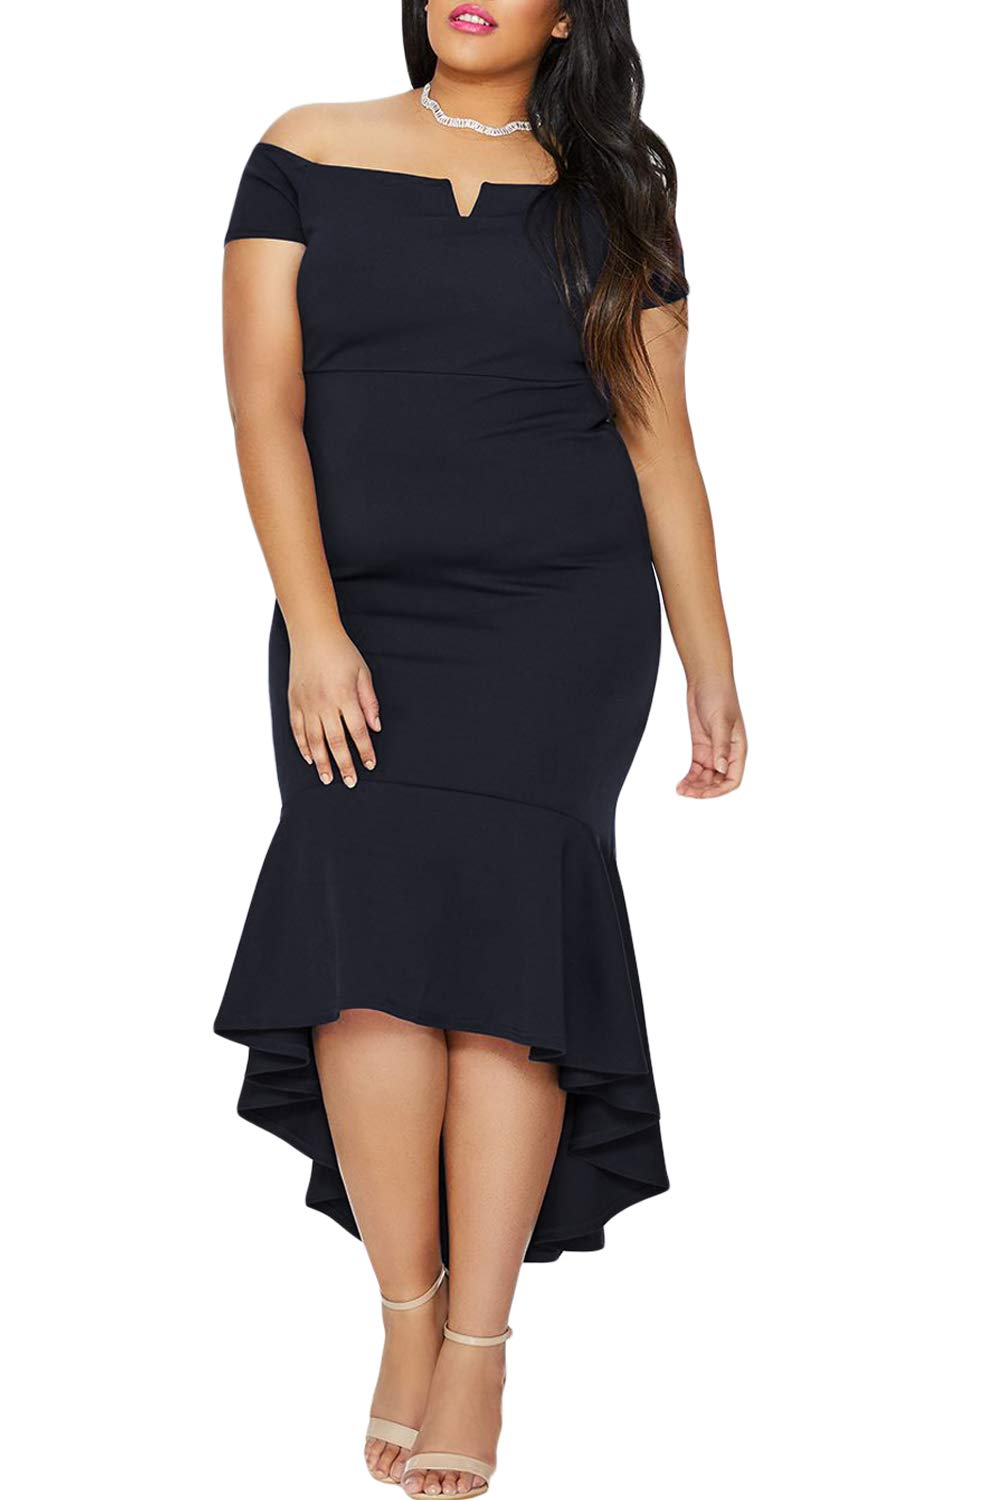 FUSENFENG Womens Plus Size Off Shoulder High Low Mermaid Evening Party Midi Dress (Navy, XXXL)